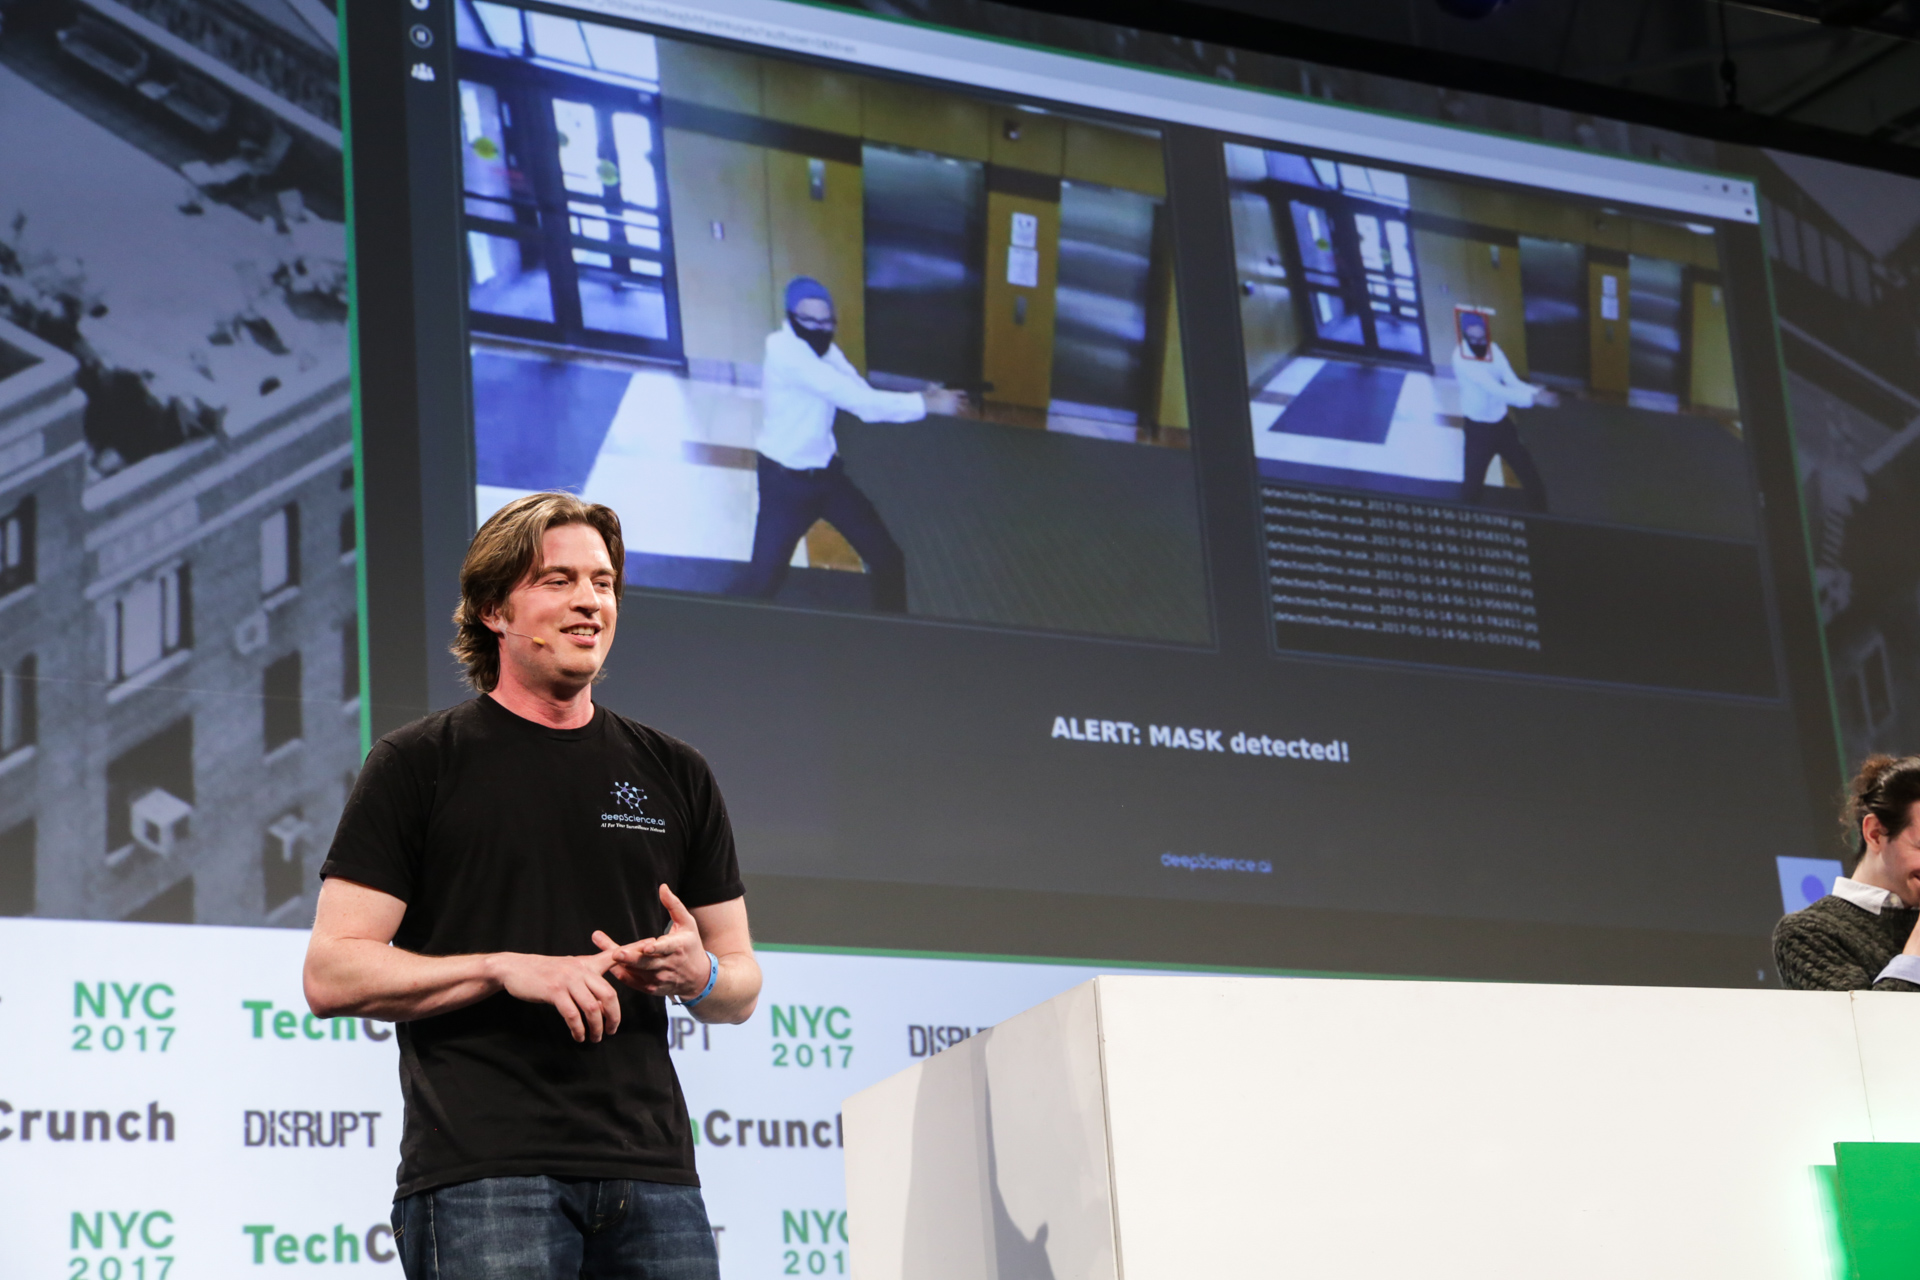 Deep Science AI joins Defendry to automatically detect crimes on camera tcdisrupt ny17 9263